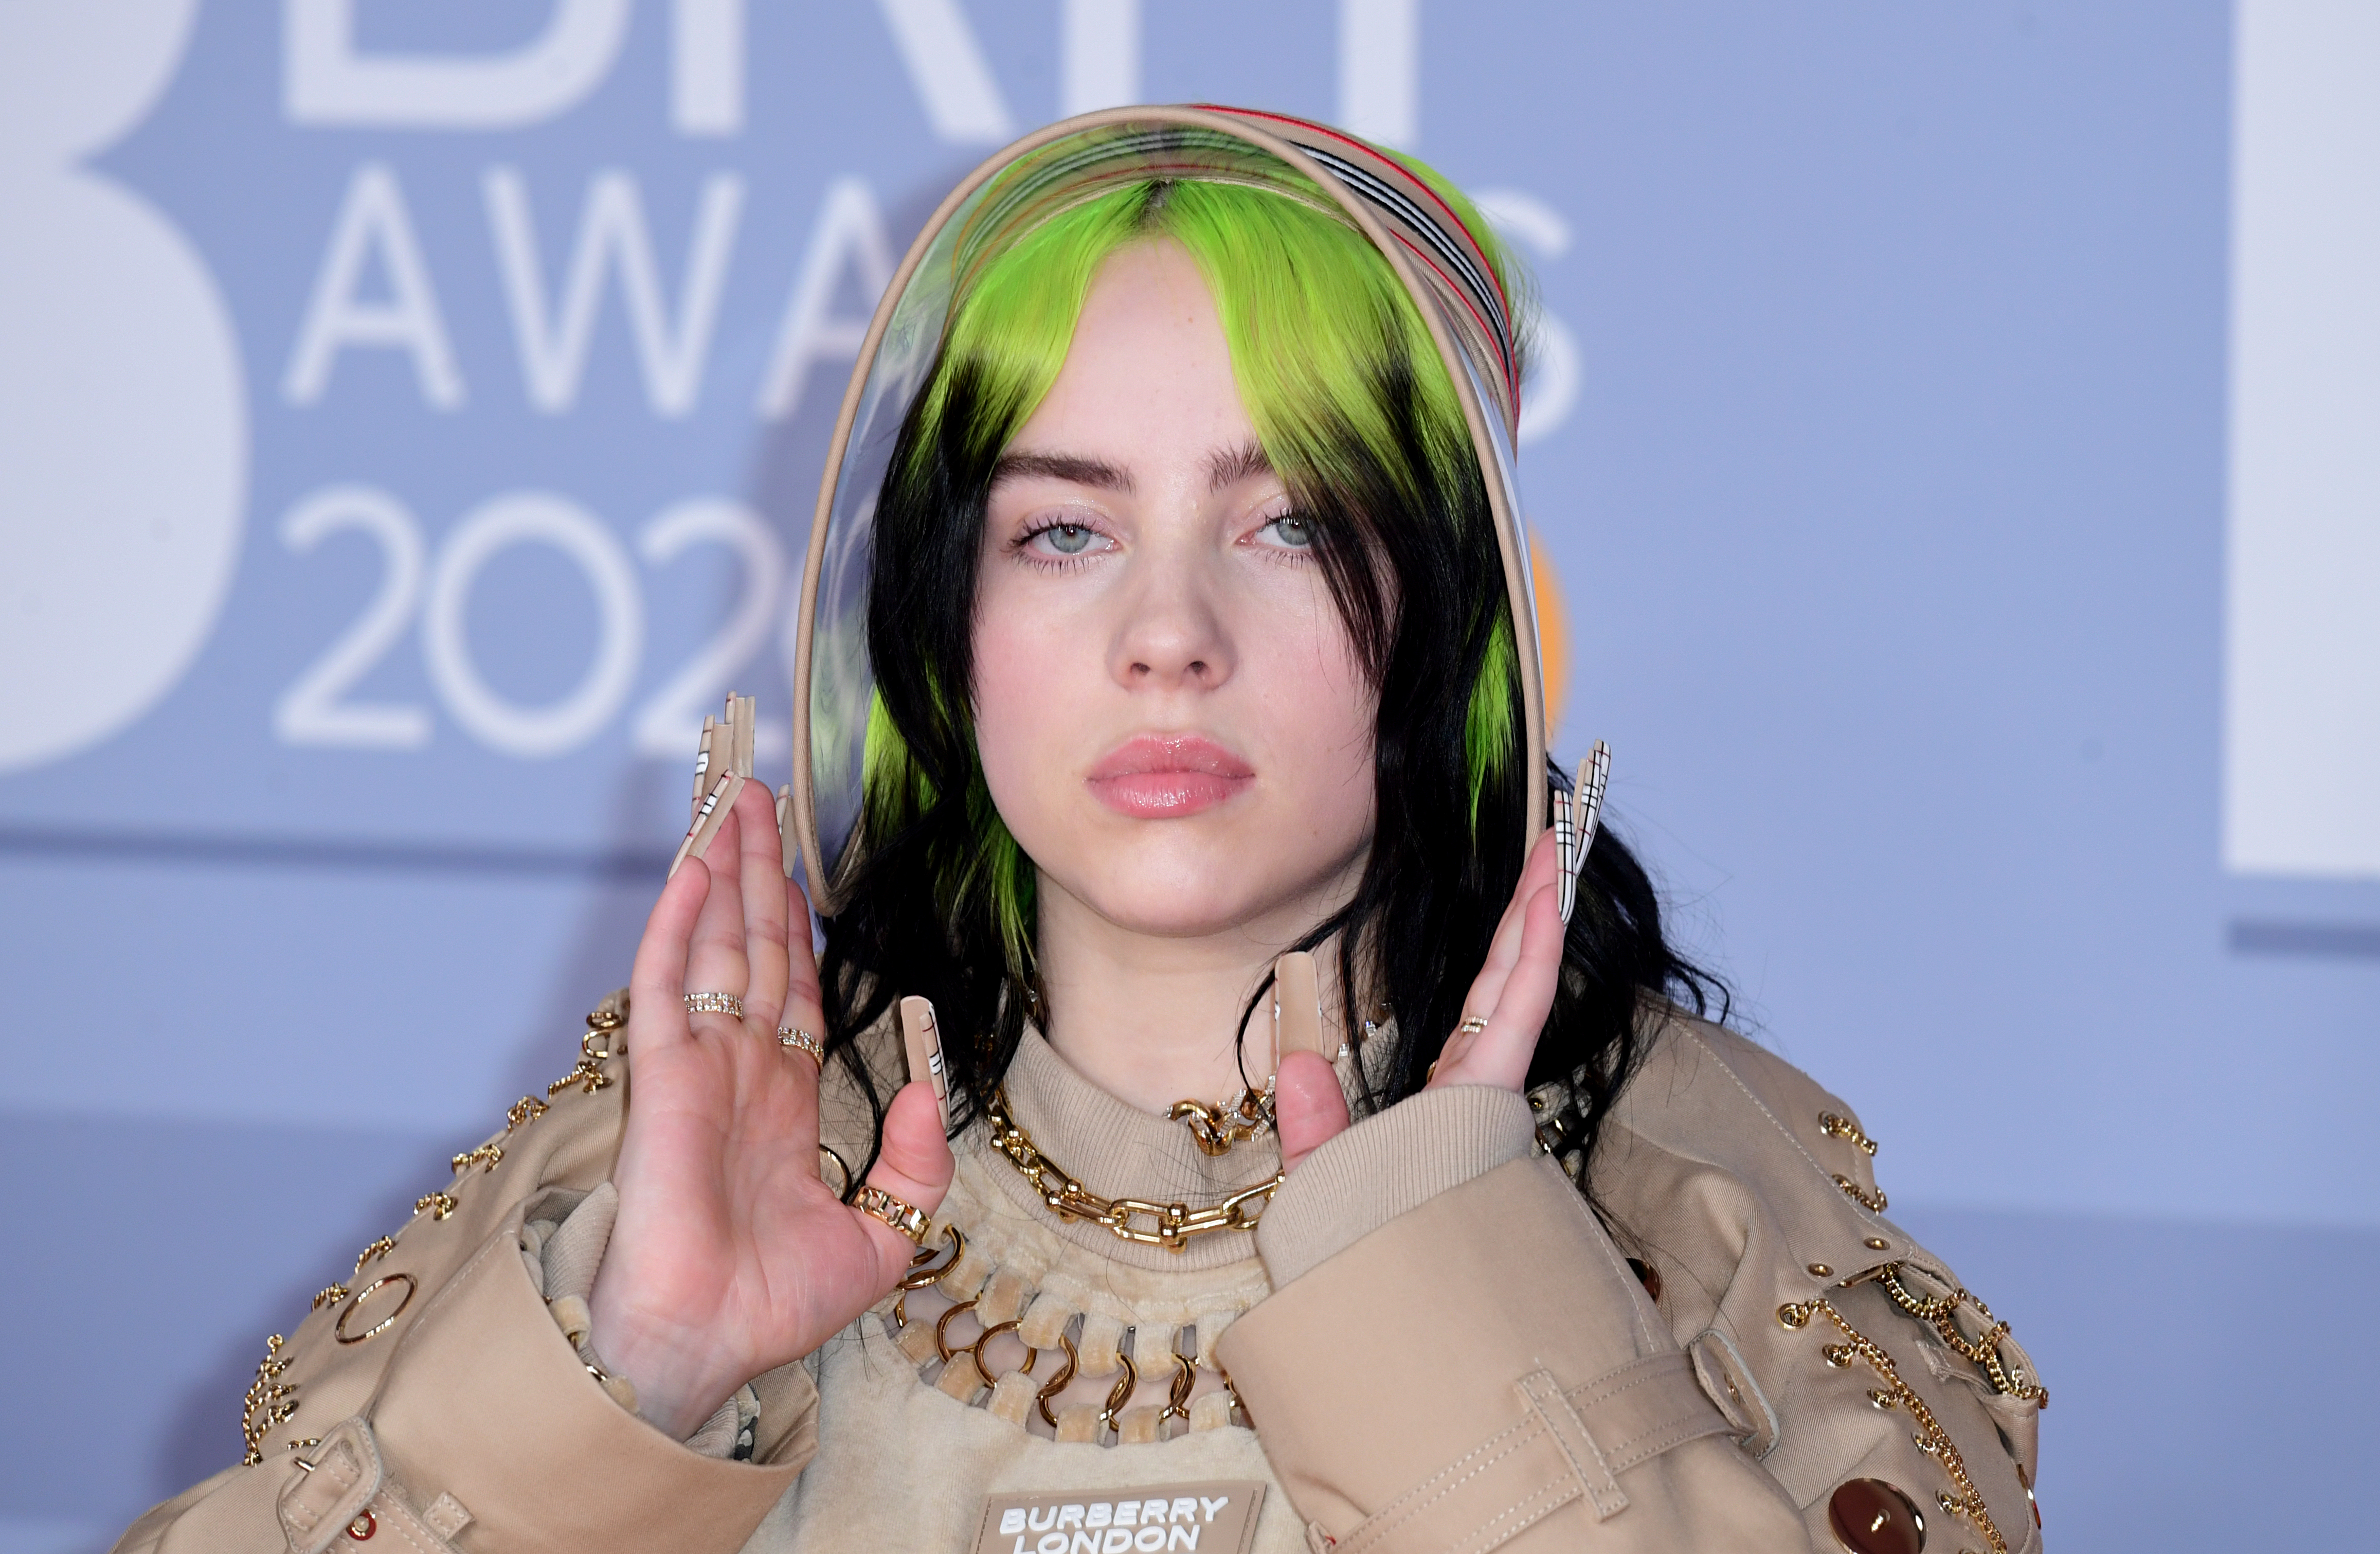 Billie Eilish Confronts Body Shamers By 'Shedding Layers' Of Clothes On Stage